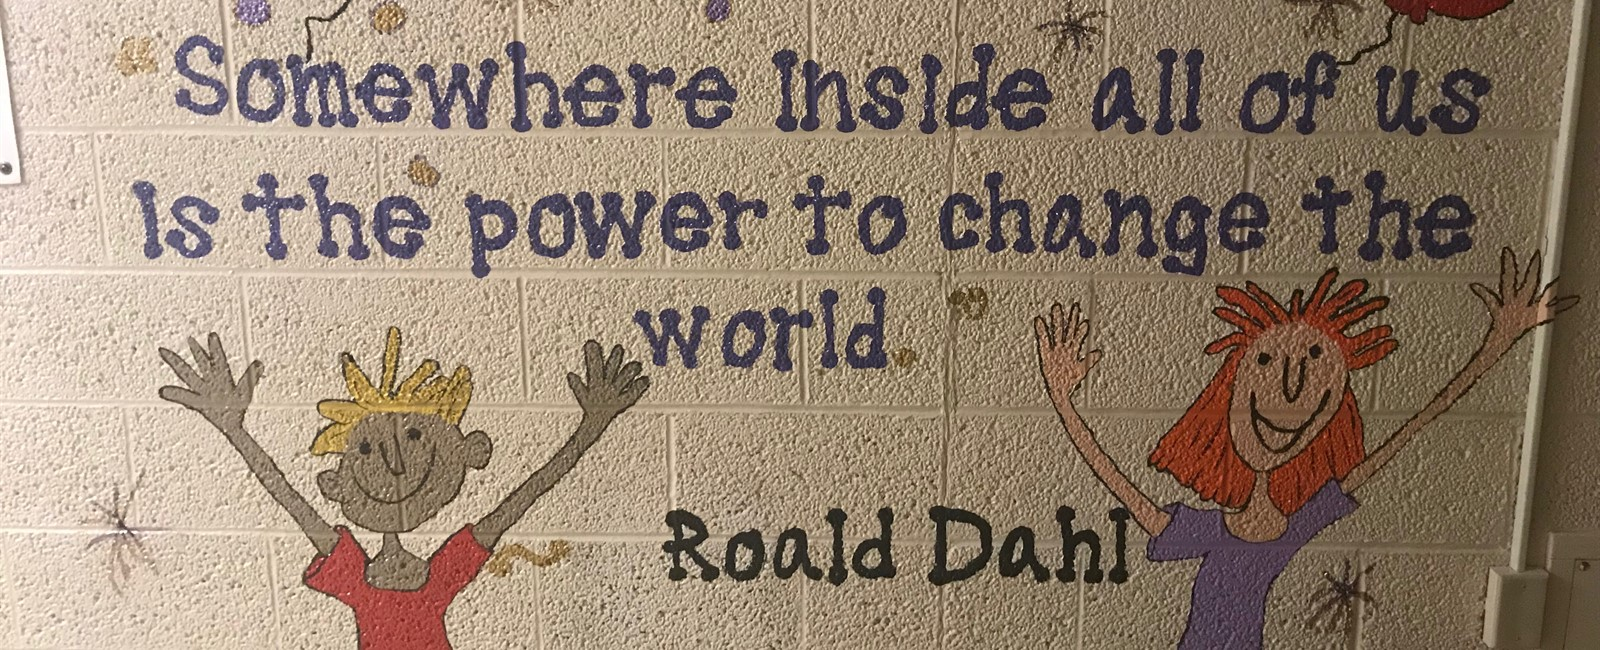 Positive messages can be seen throughout B.L. Miller Elementary School.